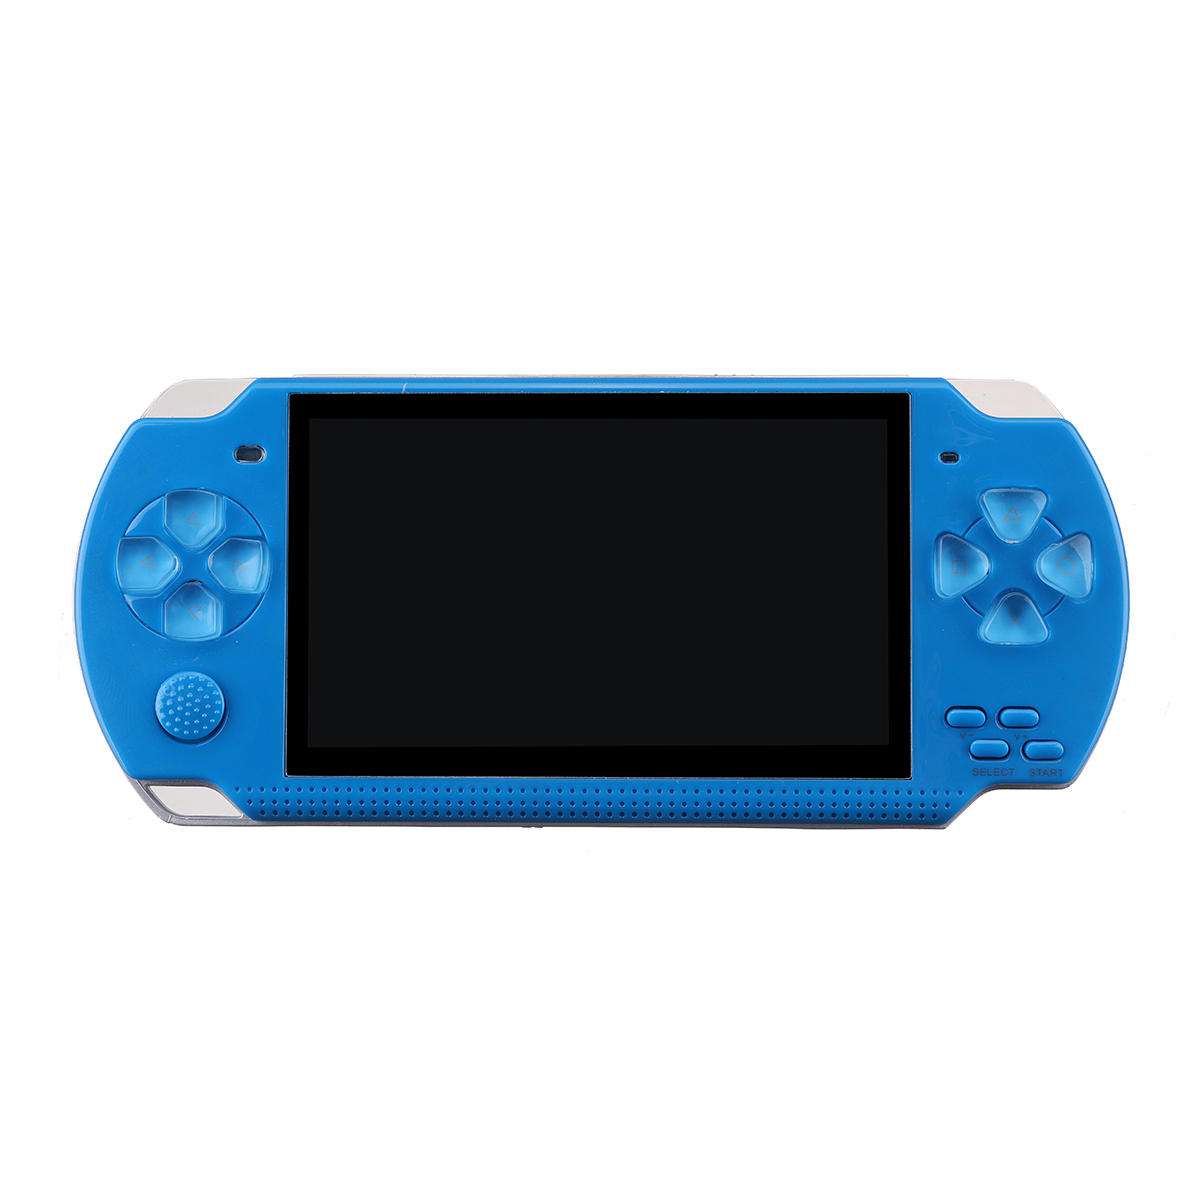 Built In 10000 Games 32 Bit 4.3inch 8GB Portable Video Handheld Blue-International Player Game Console